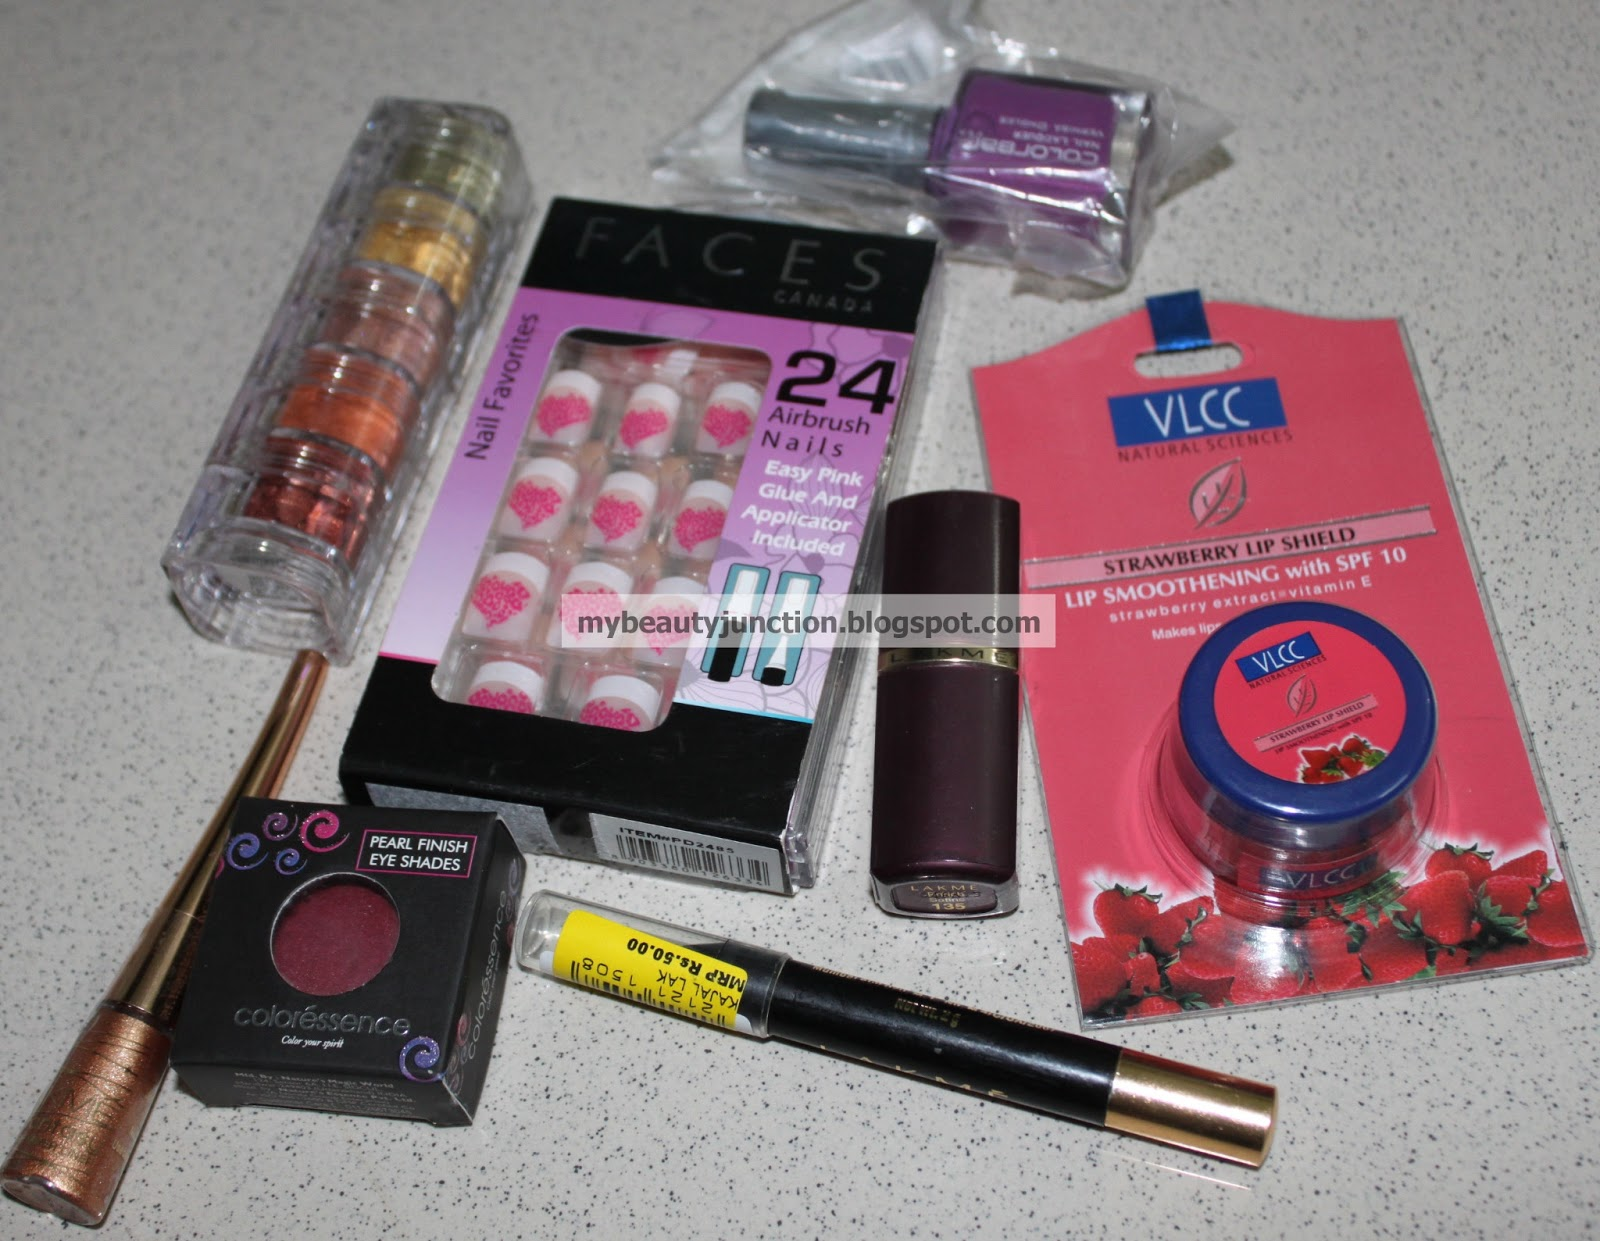 My first giveaway is open! - Cosmetopia Digest Beauty and Makeup Blog